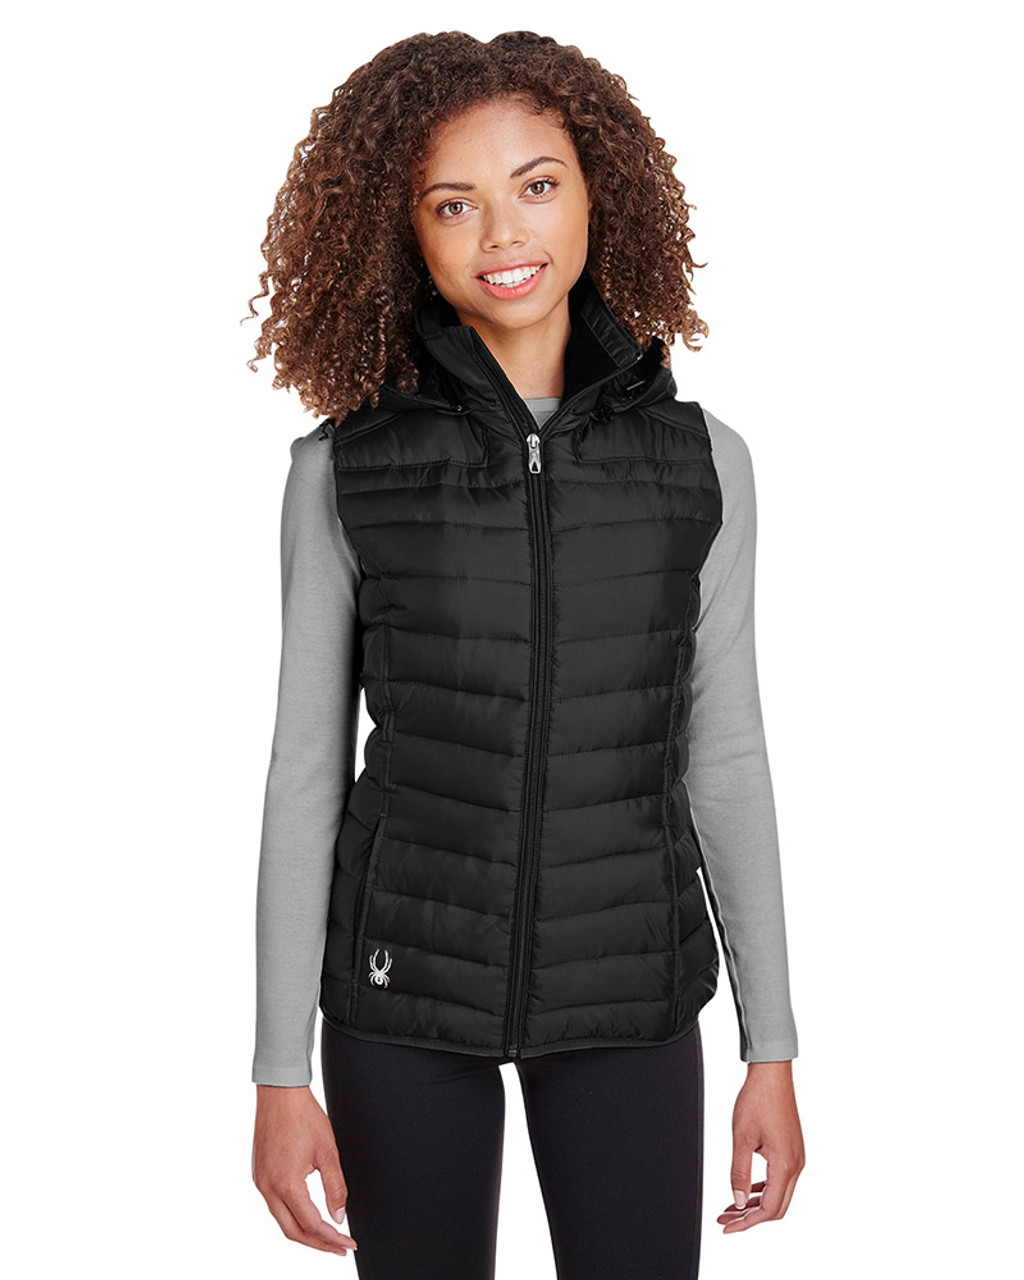 Black - S16641 Spyder Ladies' Supreme Puffer Vest | Blankclothing.ca